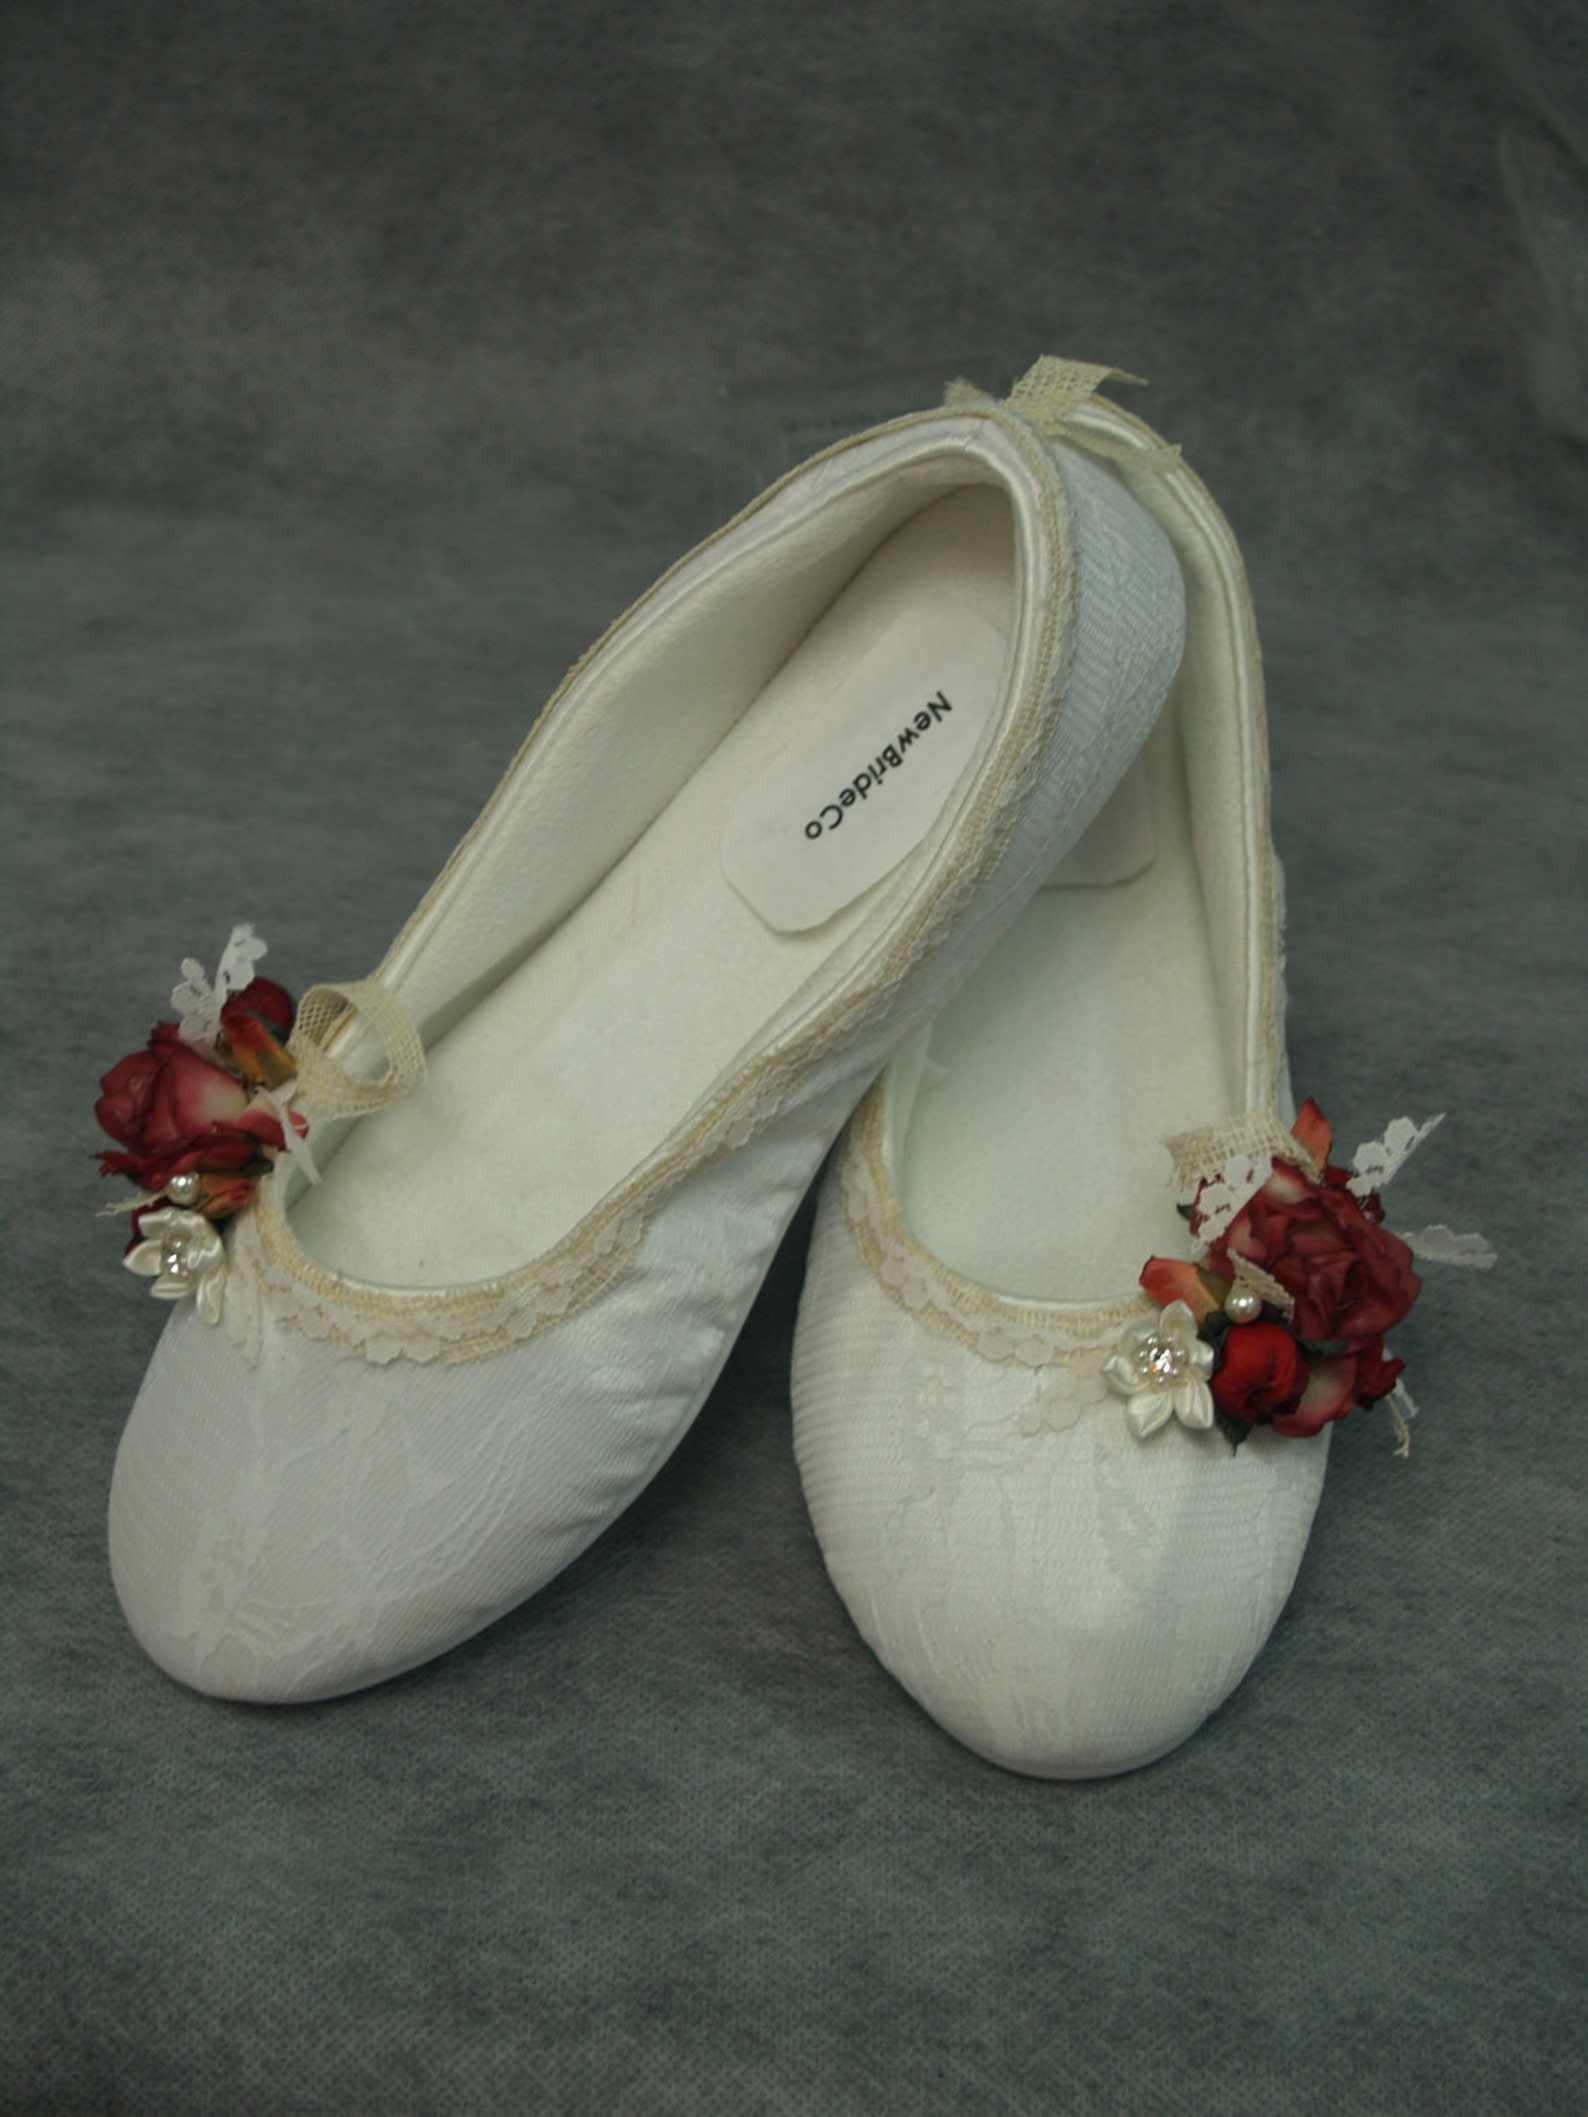 brides wedding flats, red rustic wedding burlap trimmed ballet style slippers,cushioned & comfortable, outdoor country wedding,